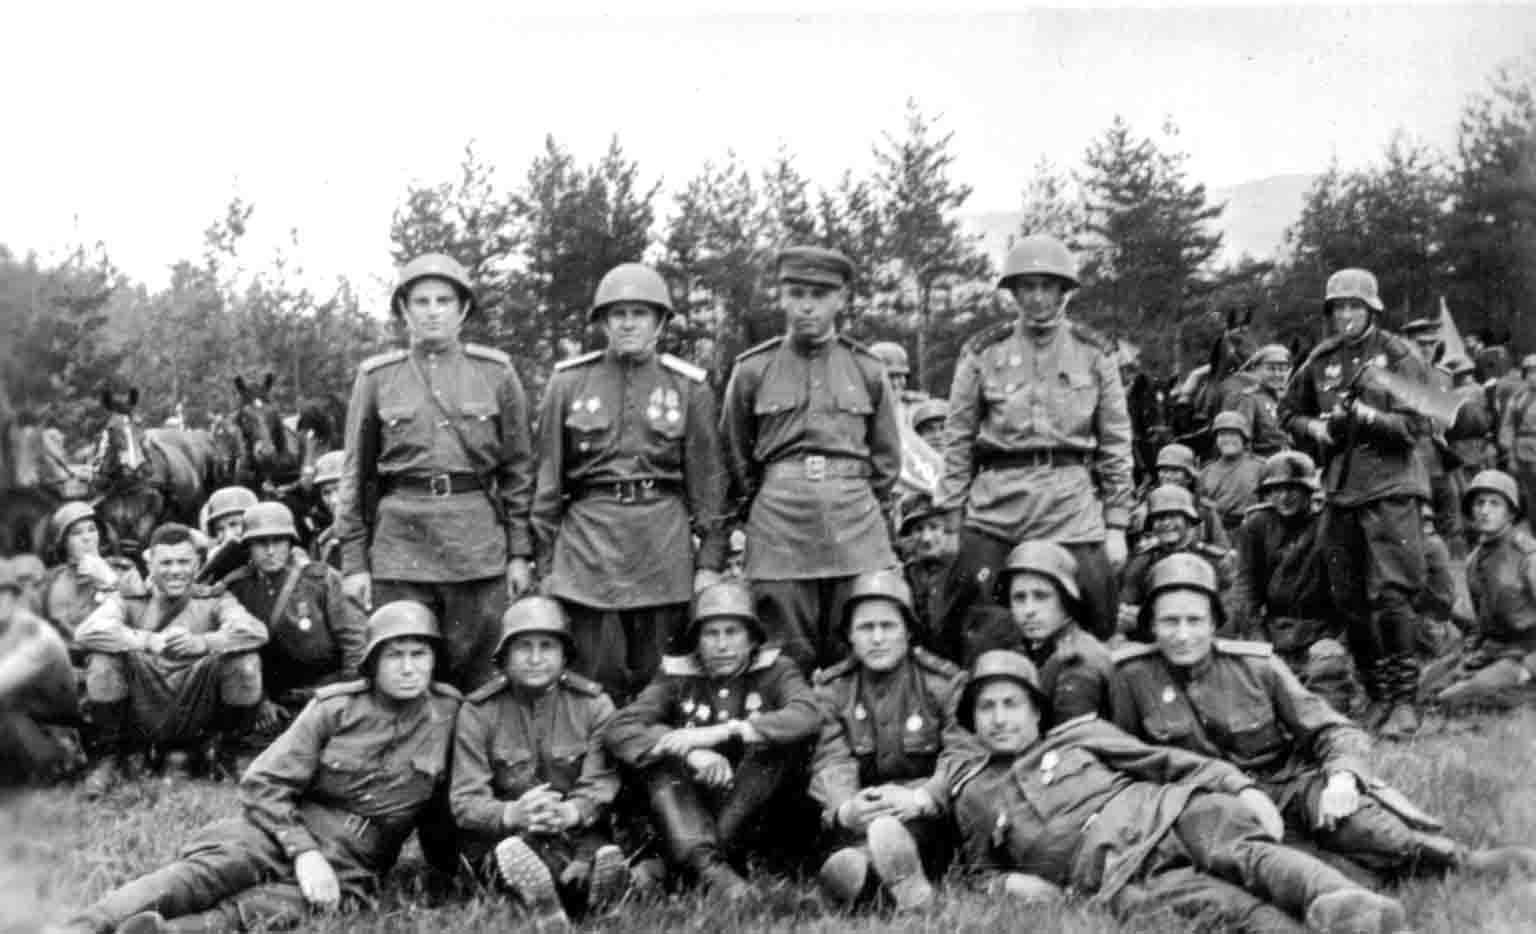 Gunners of the 144th Regiment